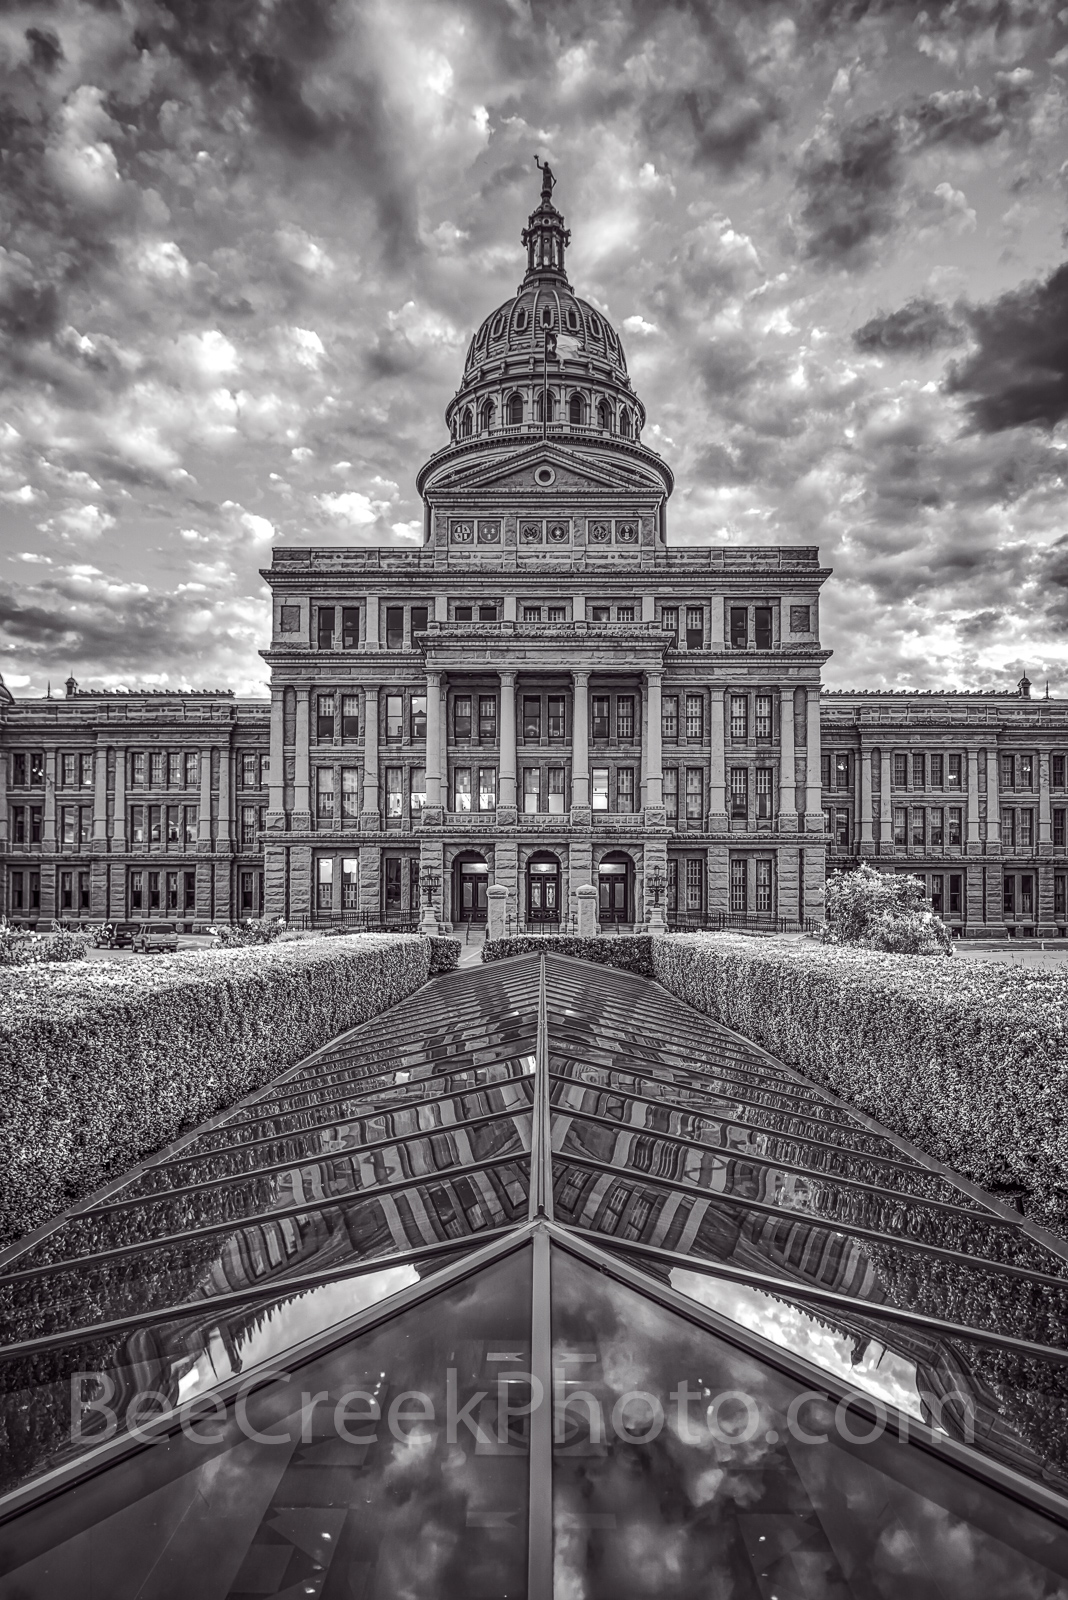 Austin, Texas Capitol, Texas State Capitol, BW, black and white, vertical, tall, Capitol, Capital, texas capital, city, downtown, cities, urban, architecture, architectural, clouds, sky, Greek Renaiss, photo